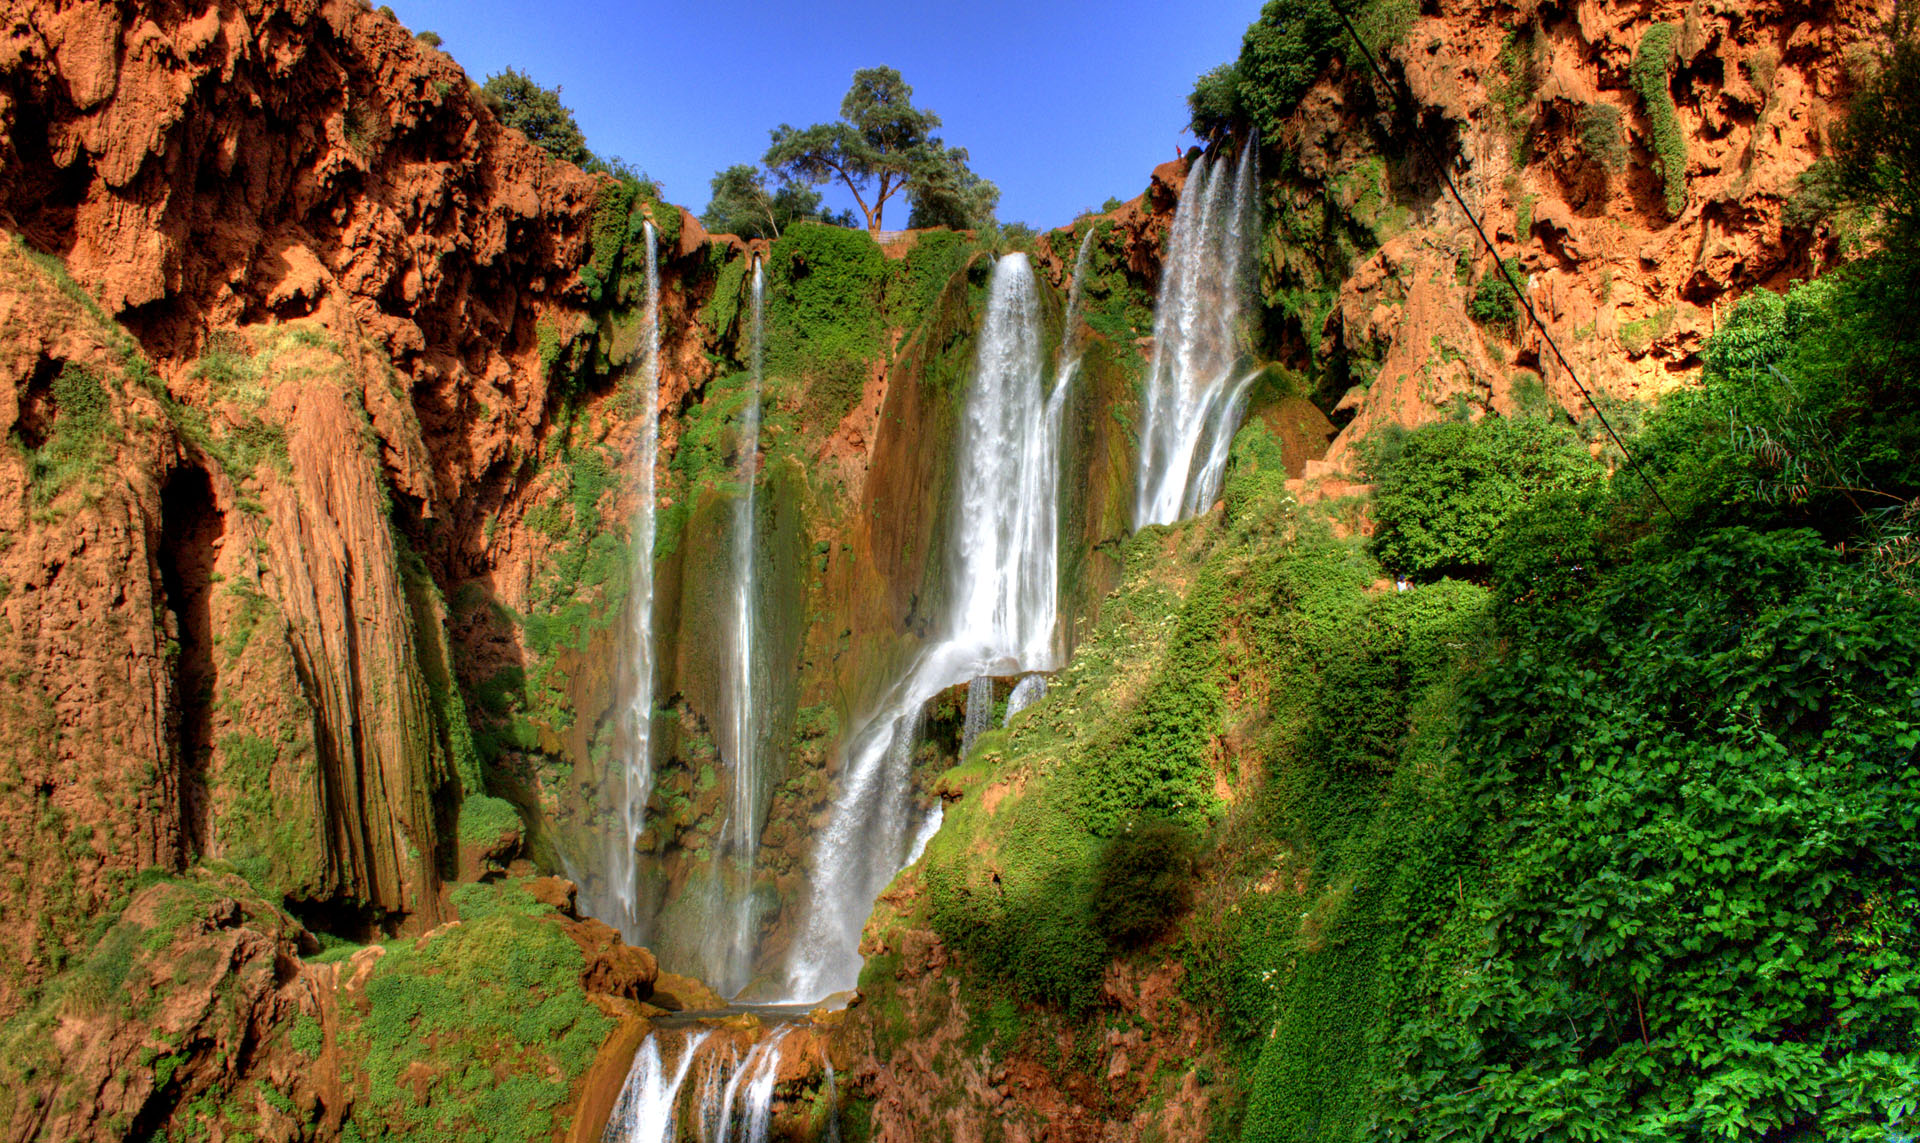 Morocco day trip from Marrakech to Ouzoud waterfalls to refresh in the cascades